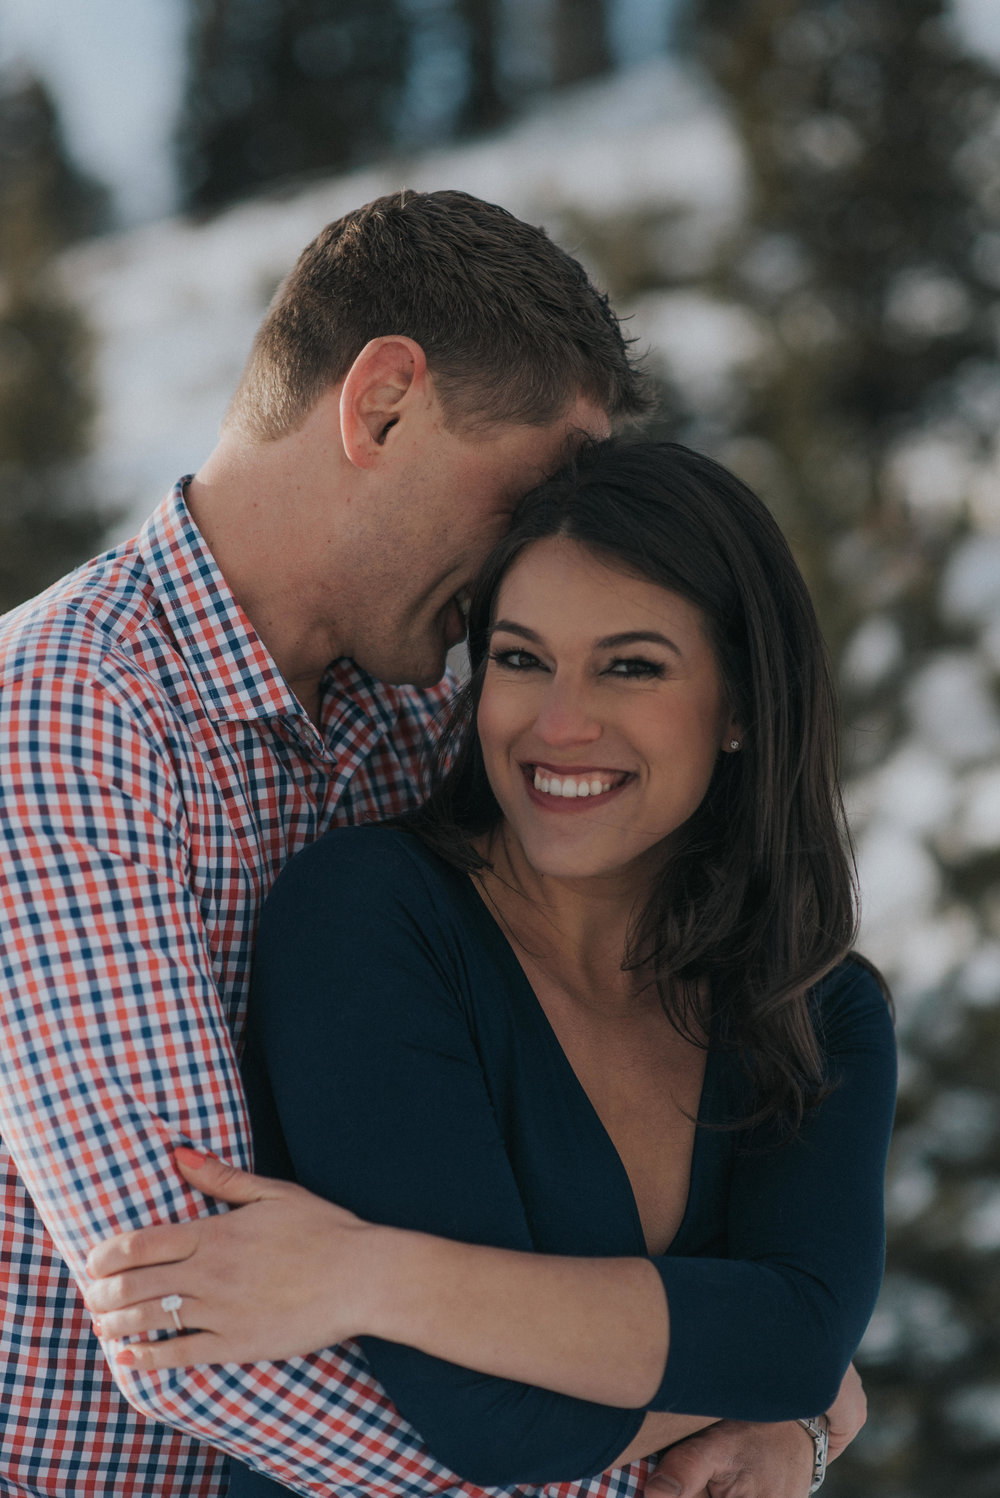 Colorado engagement session photography based in Denver, CO.